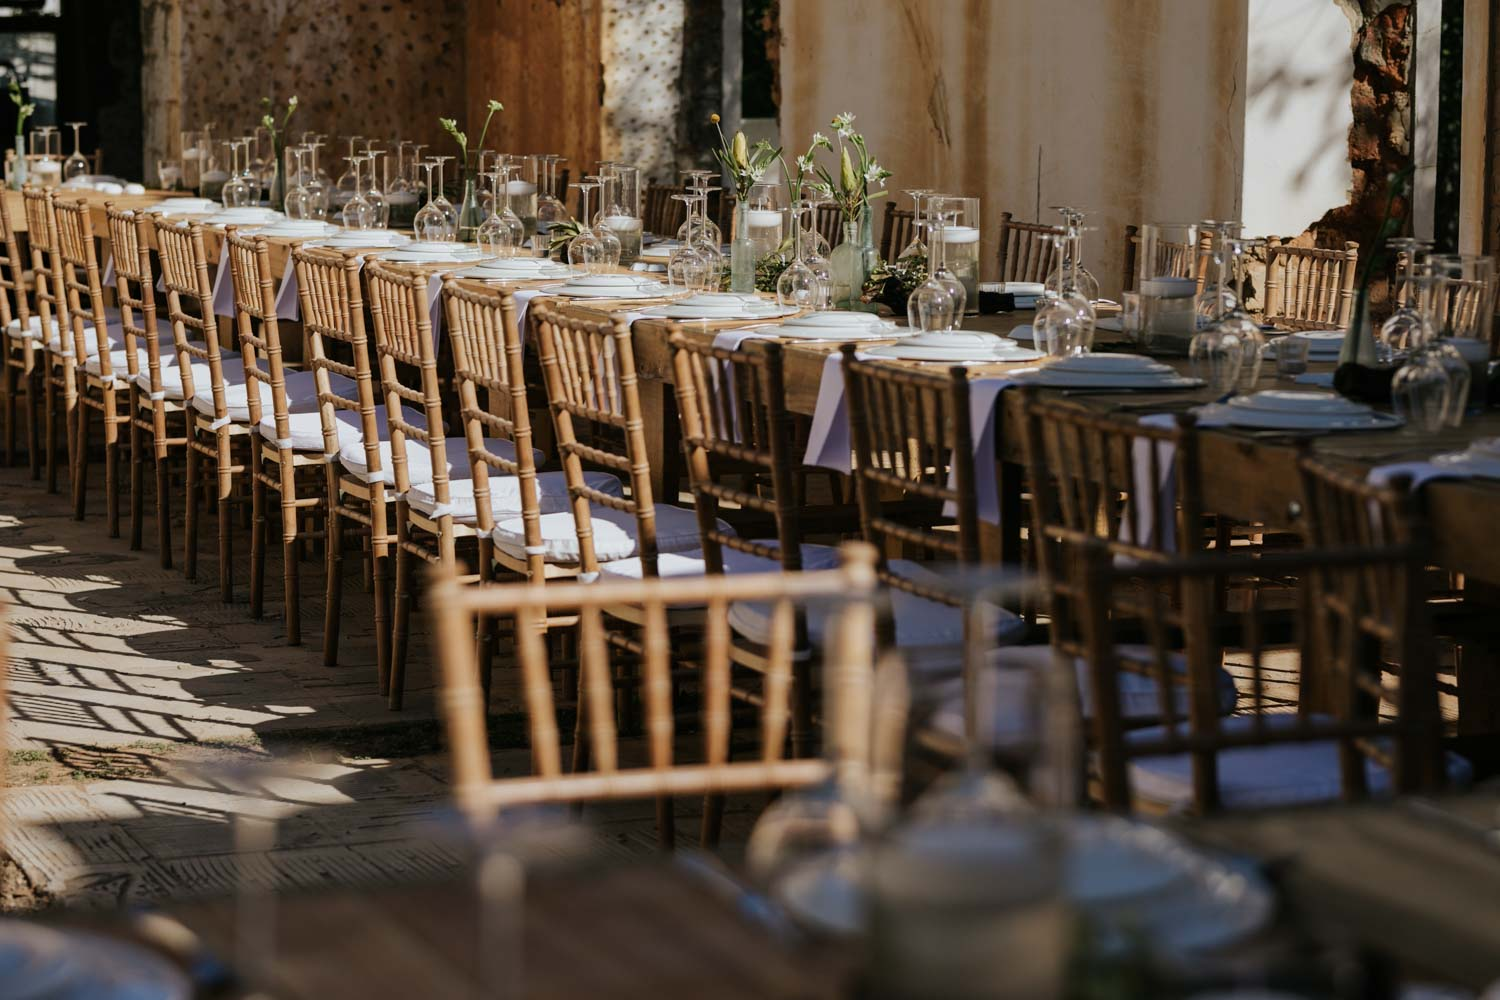 Long wooden wedding tables set with simple green flower arrangements, white linen, candles and glass.